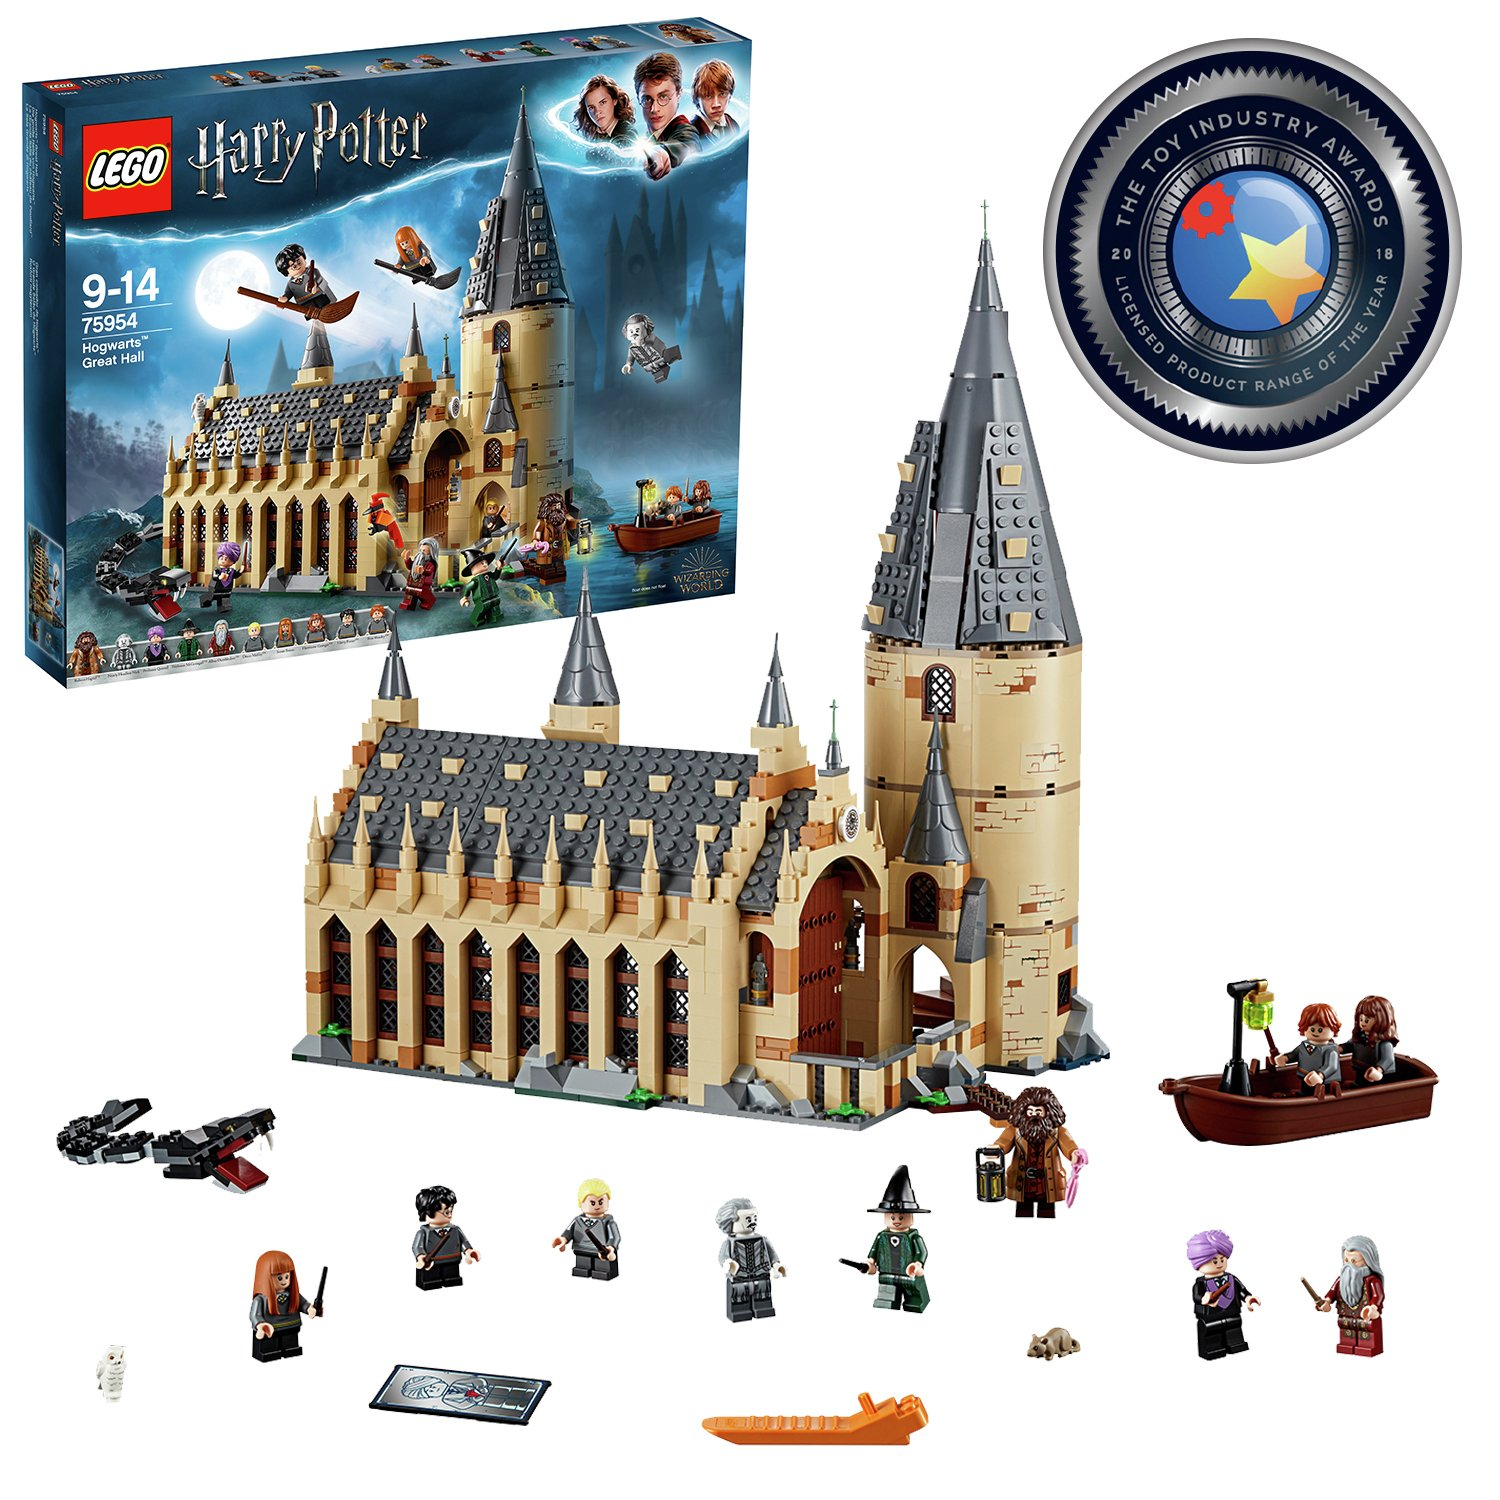 LEGO Harry Potter Hogwarts Great Hall Toy - 75954